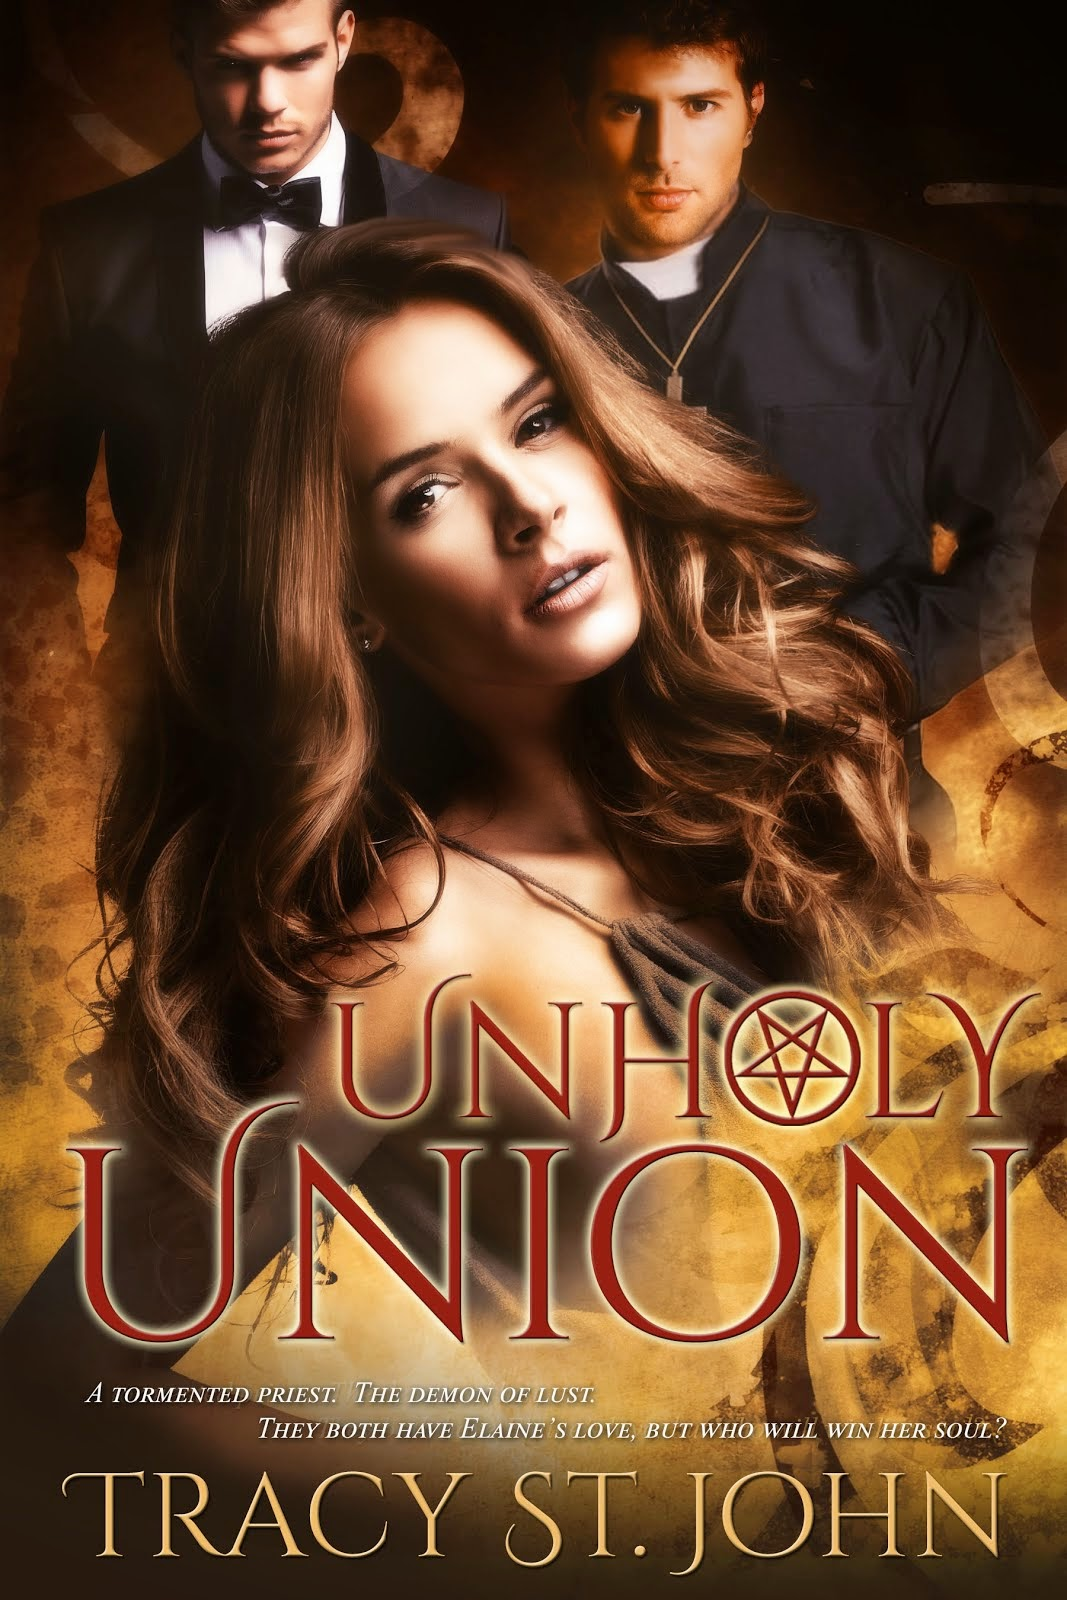 Unholy Union, The Romance Reviews Best of 2011 Nominee and Top Pick